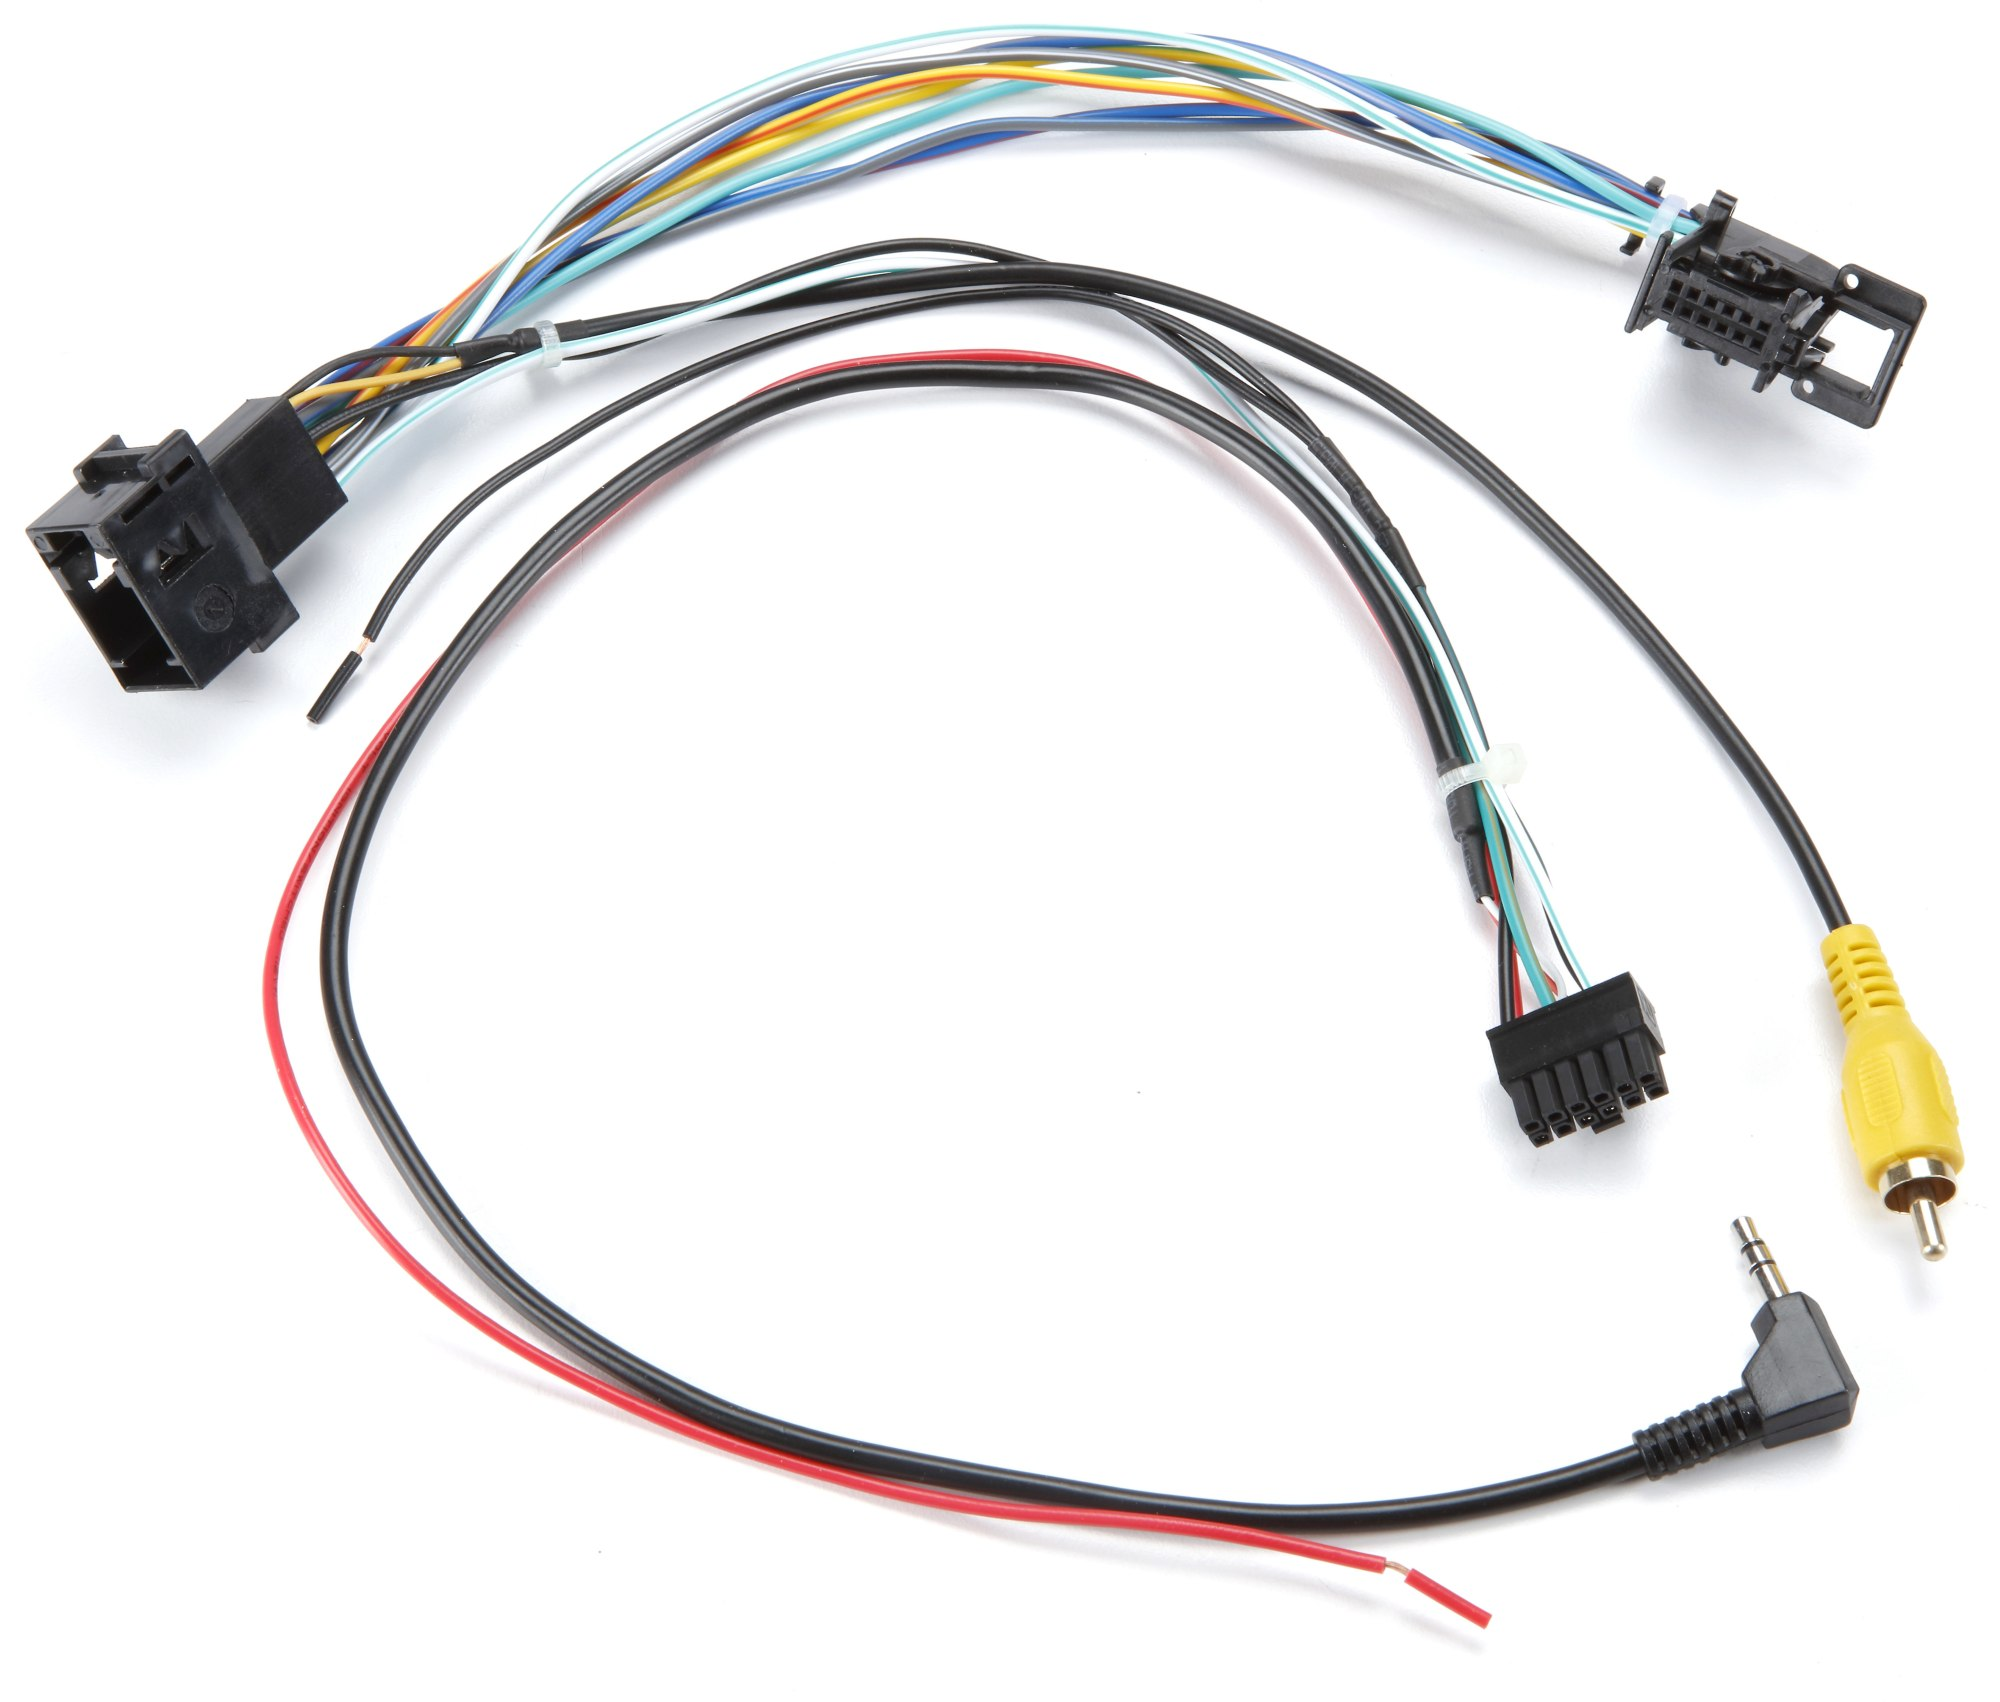 hight resolution of axxess ax fdsync swc steering wheel control harness install the axxess aswc 1 steering wheel control adapter in 2015 up ford transit vehicles without